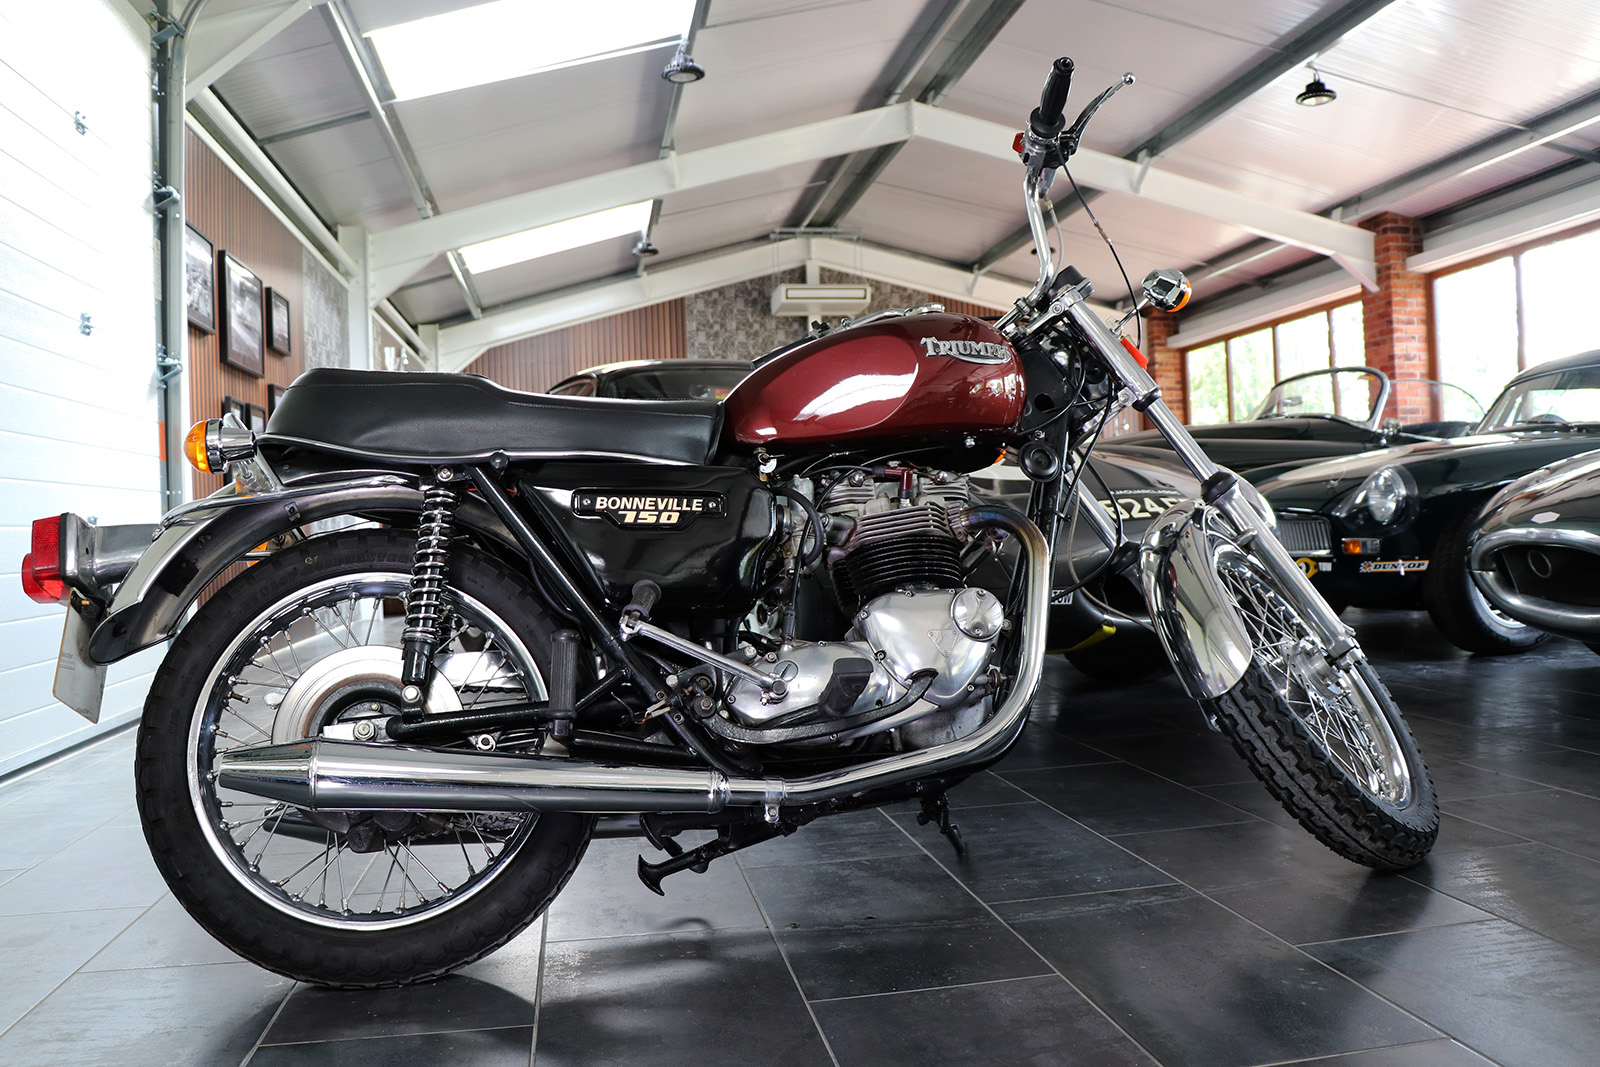 Triumph Bonneville_Sayer Selection 1 web.jpg